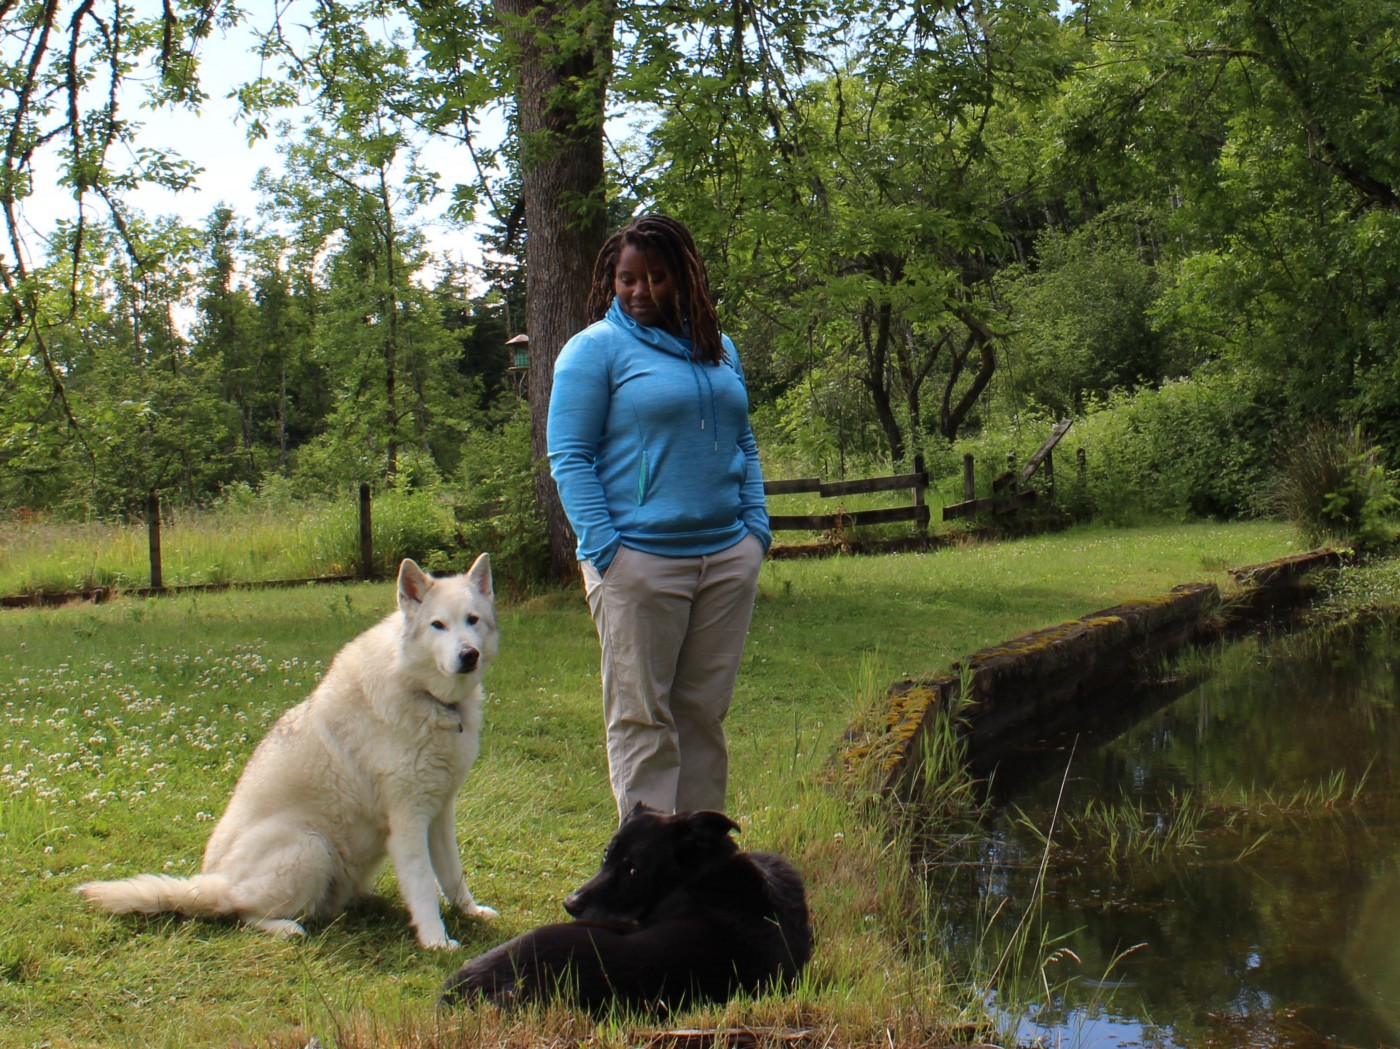 Nicole and her dogs near the edge of her pond. One dog is black and the other is white. Photo credit: Nicole Hams